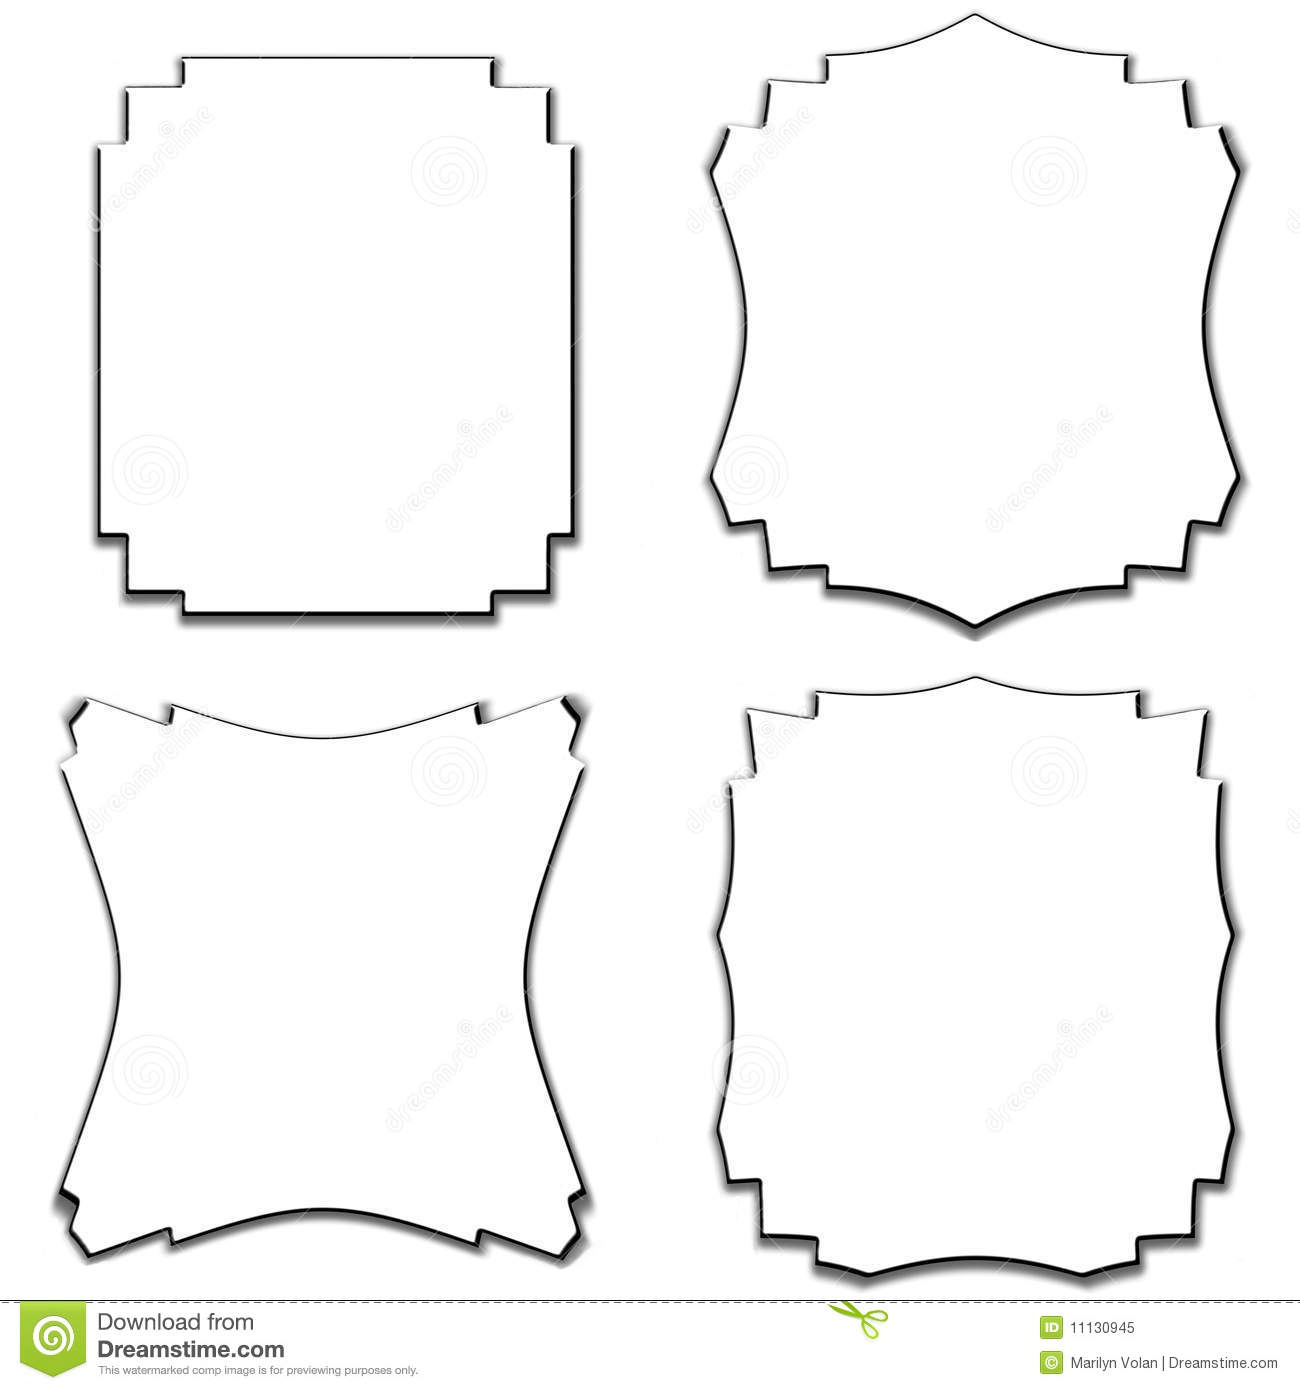 word how to change border of a shape